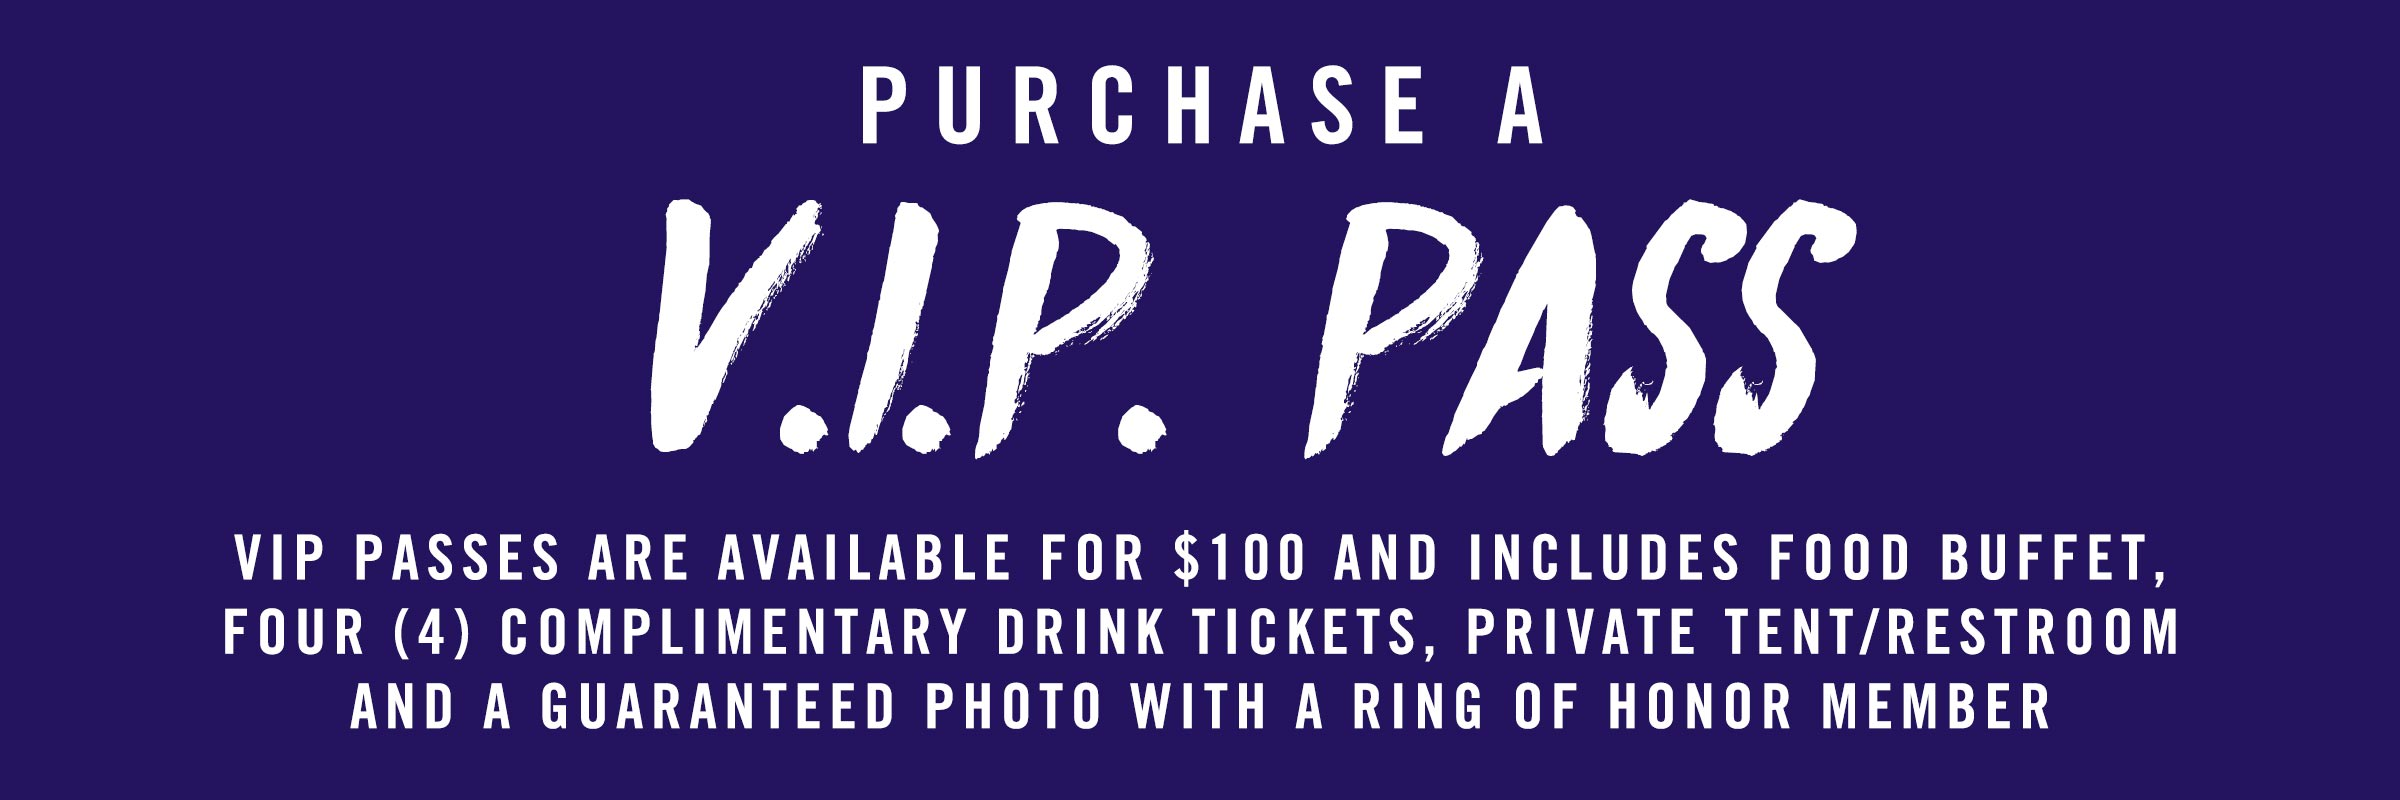 Purchase A V.I.P Pass